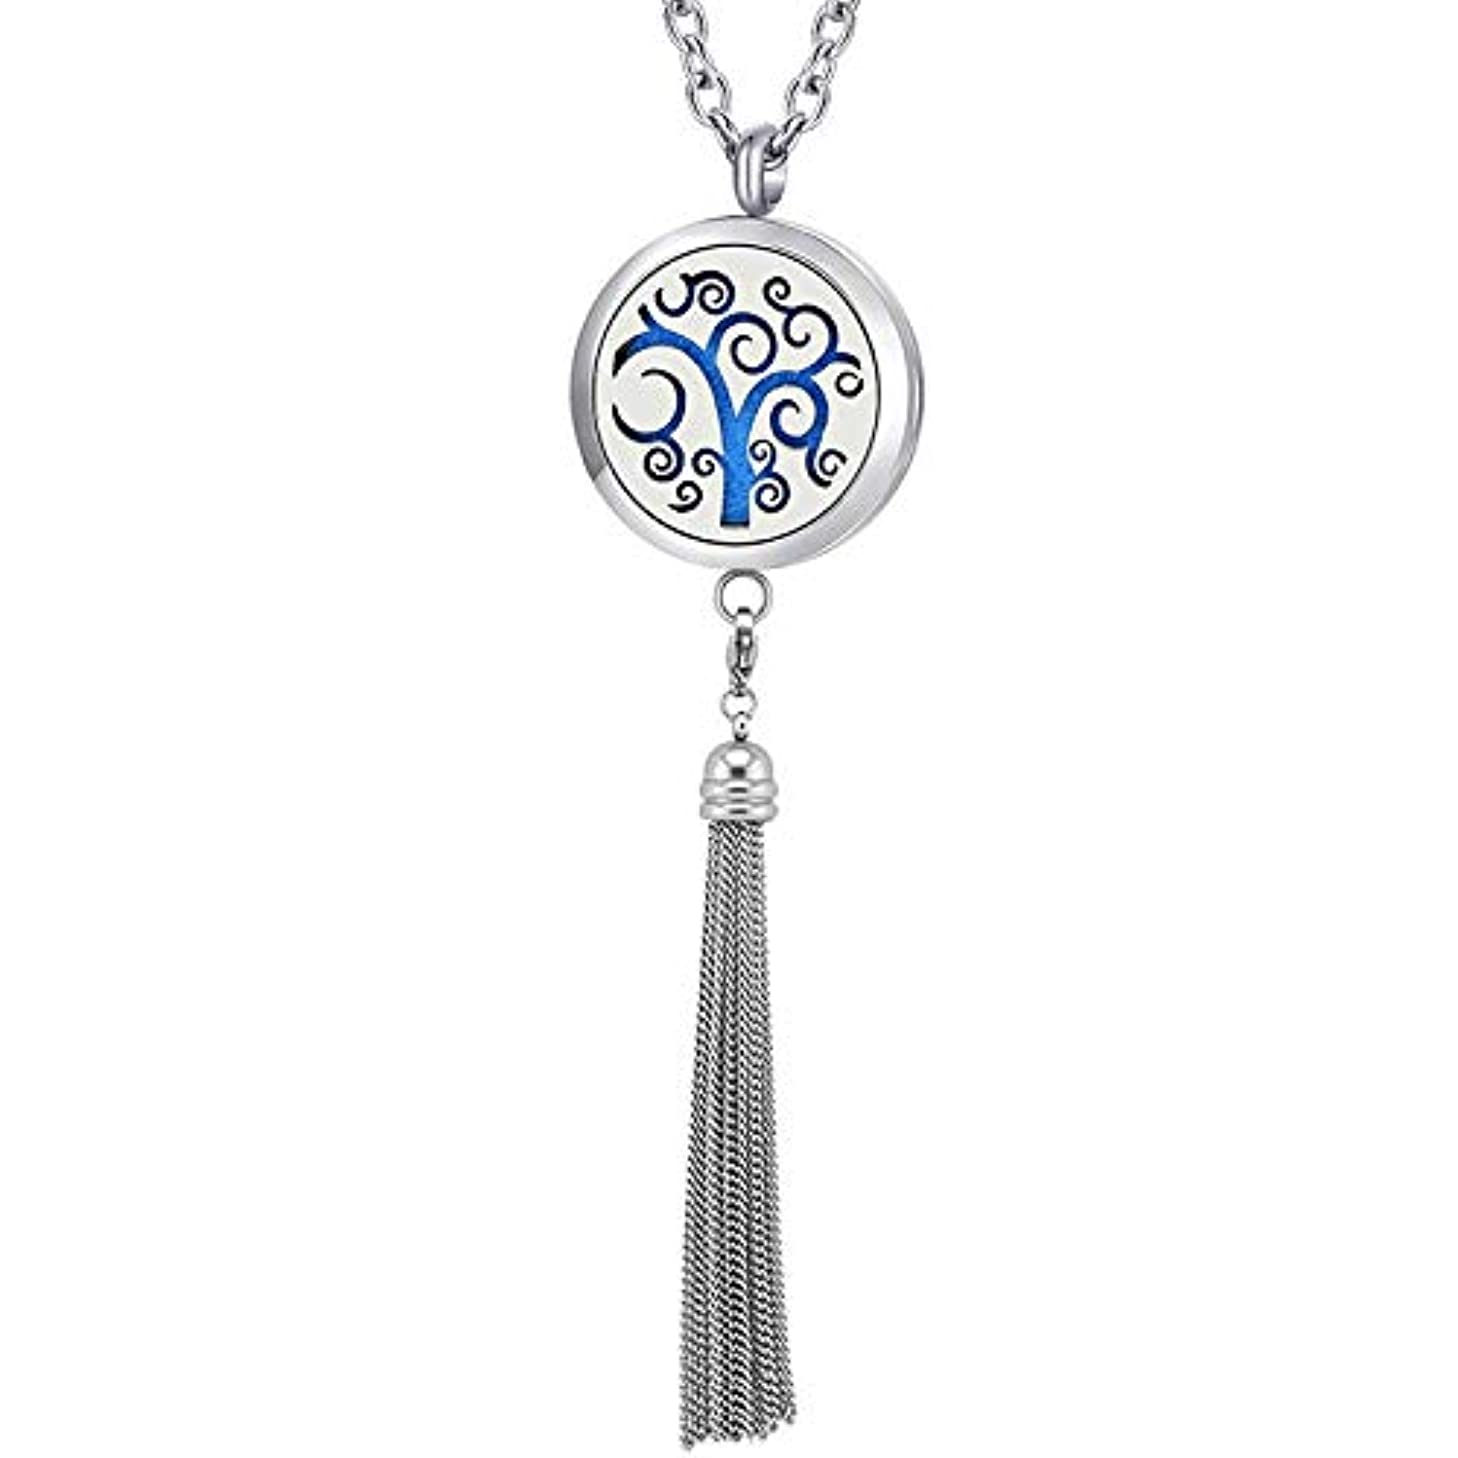 Locket Jewelry | Silver Magnetic Stainless Steel Essential Oil Diffuser Locket Pendants & Necklaces | with Tassel